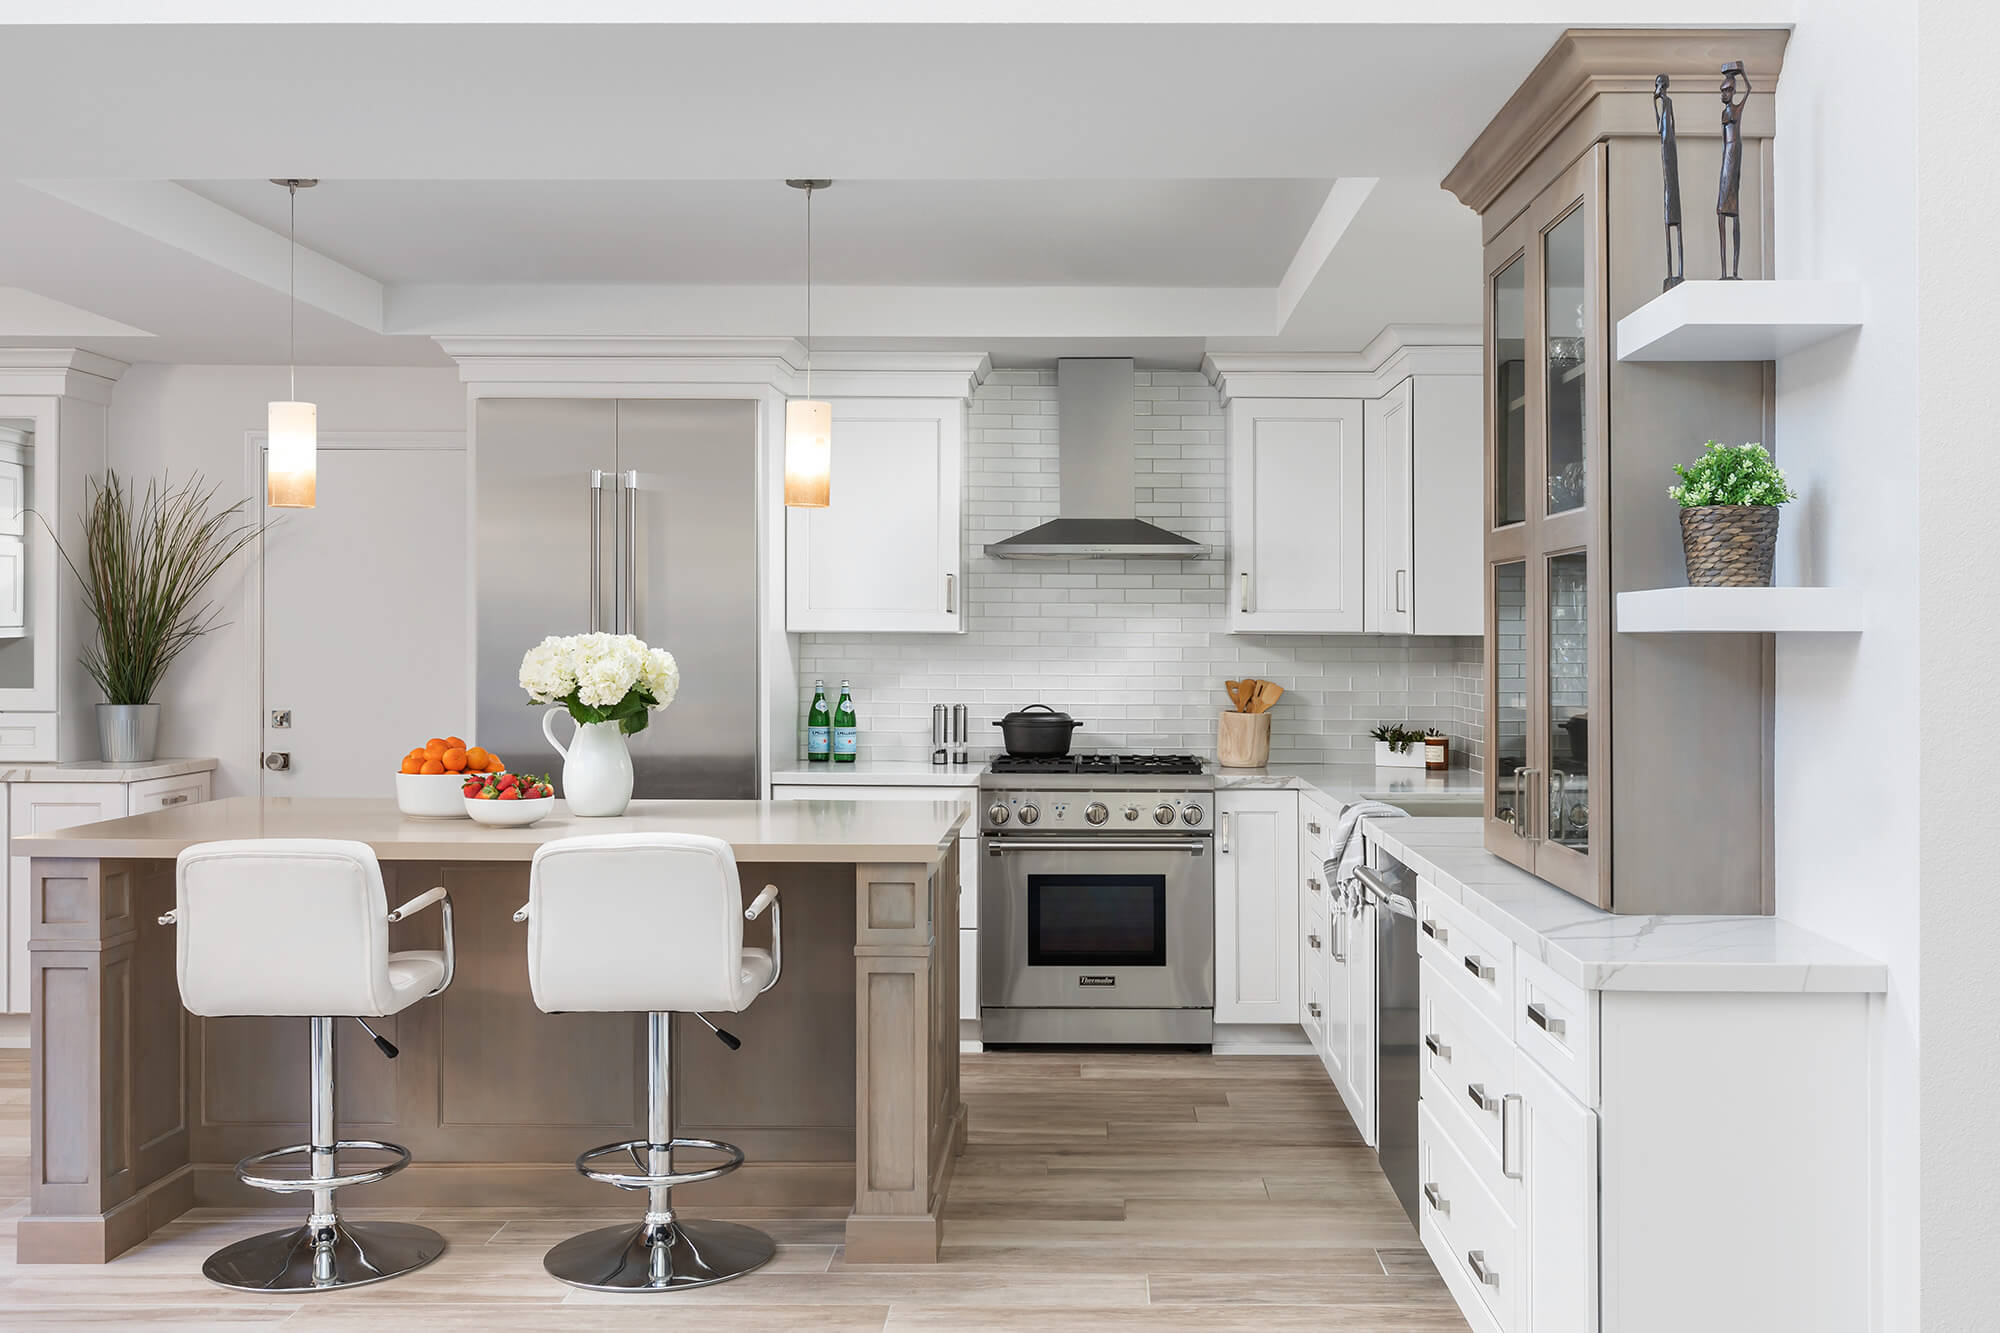 Bath Remodeling Companies In Mission Viejo Sea Pointe Construction